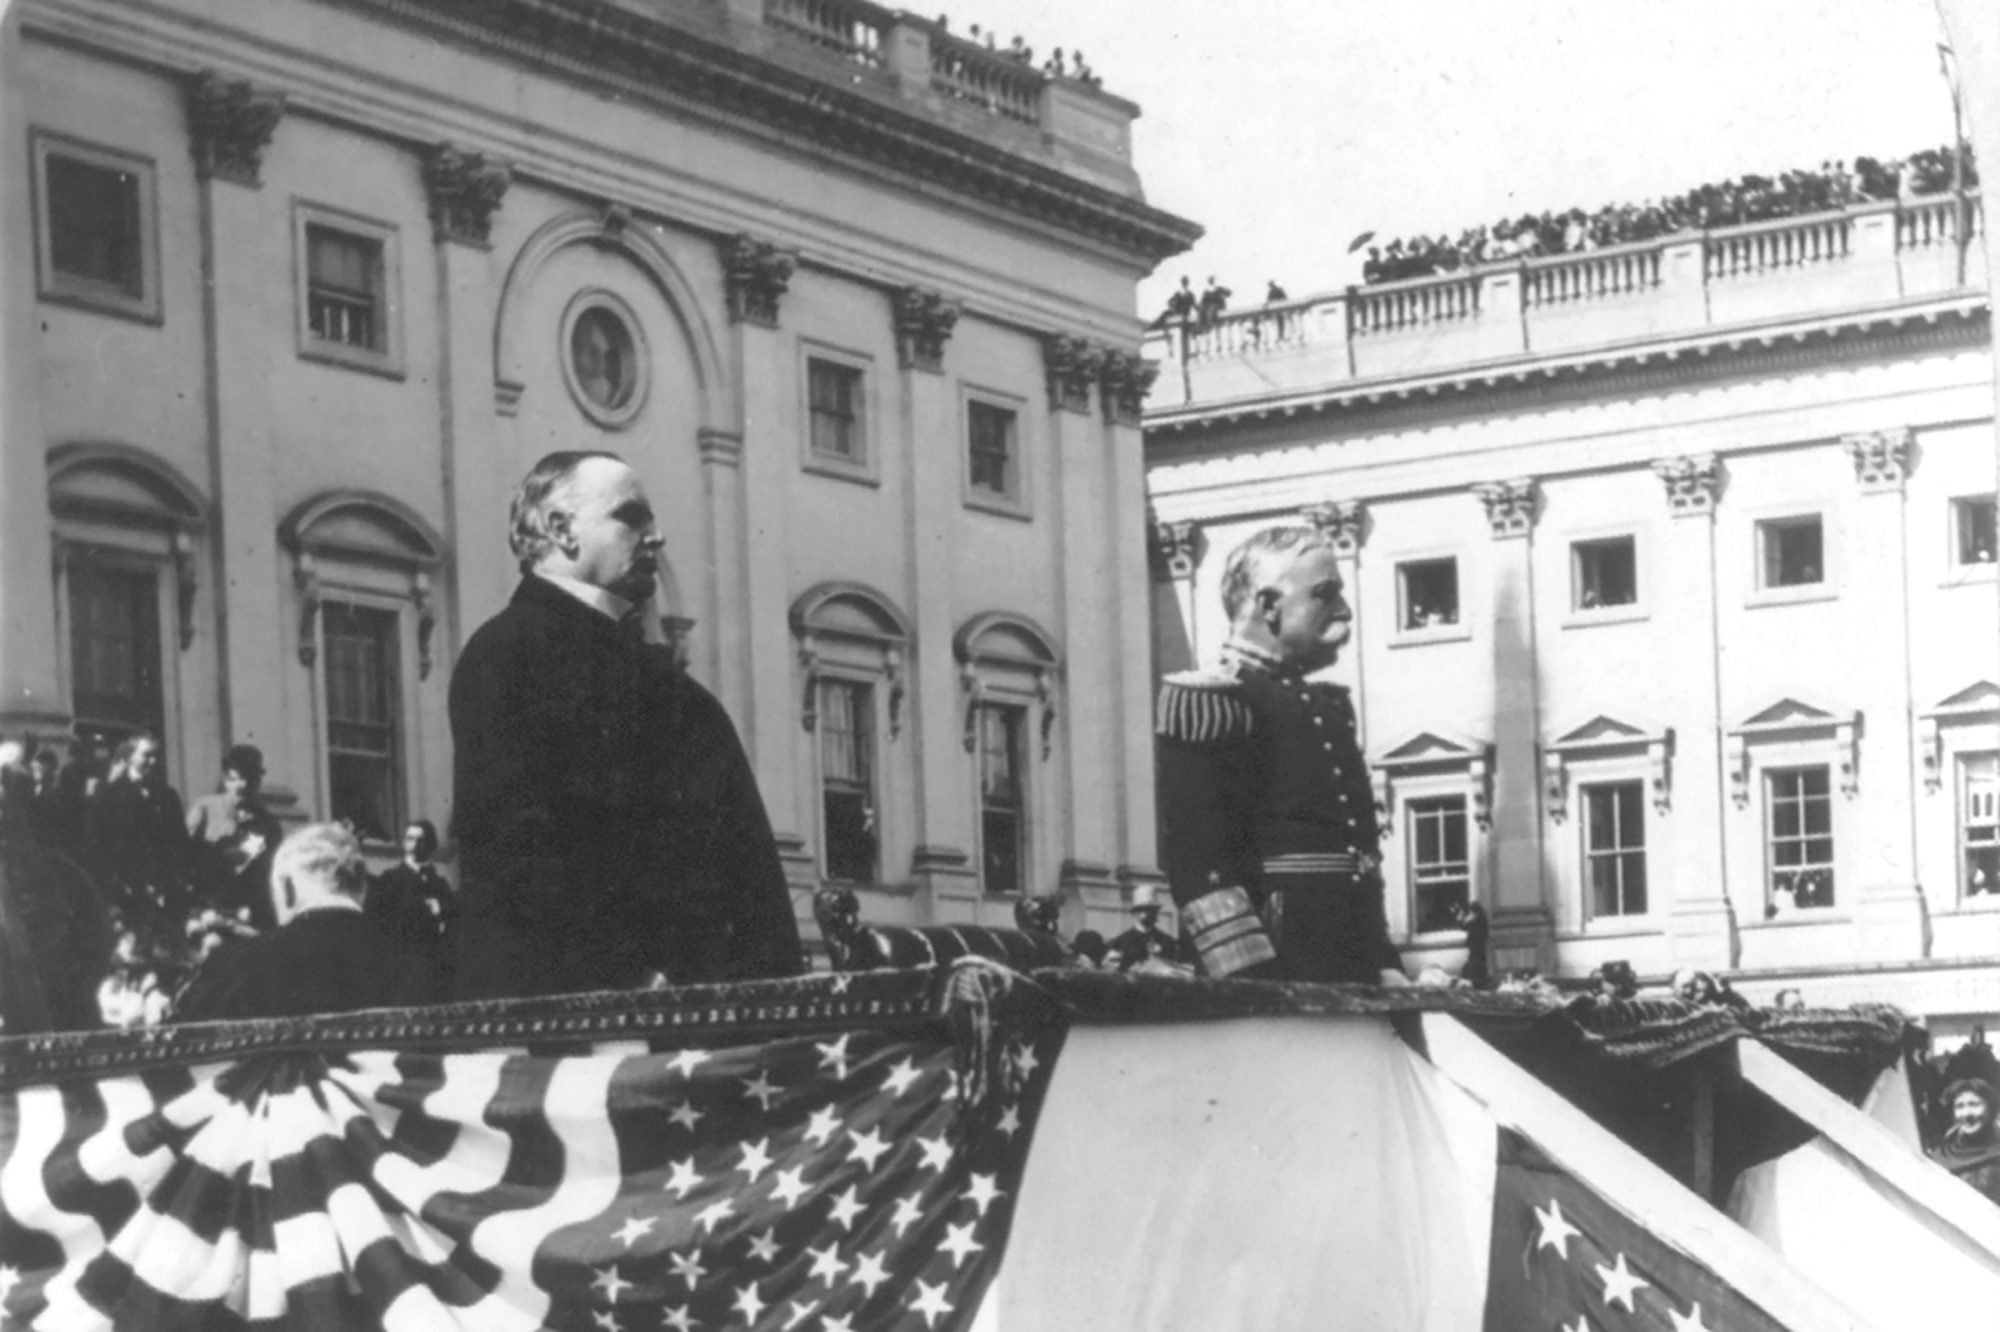 Photograph of William McKinley in front of a crowd